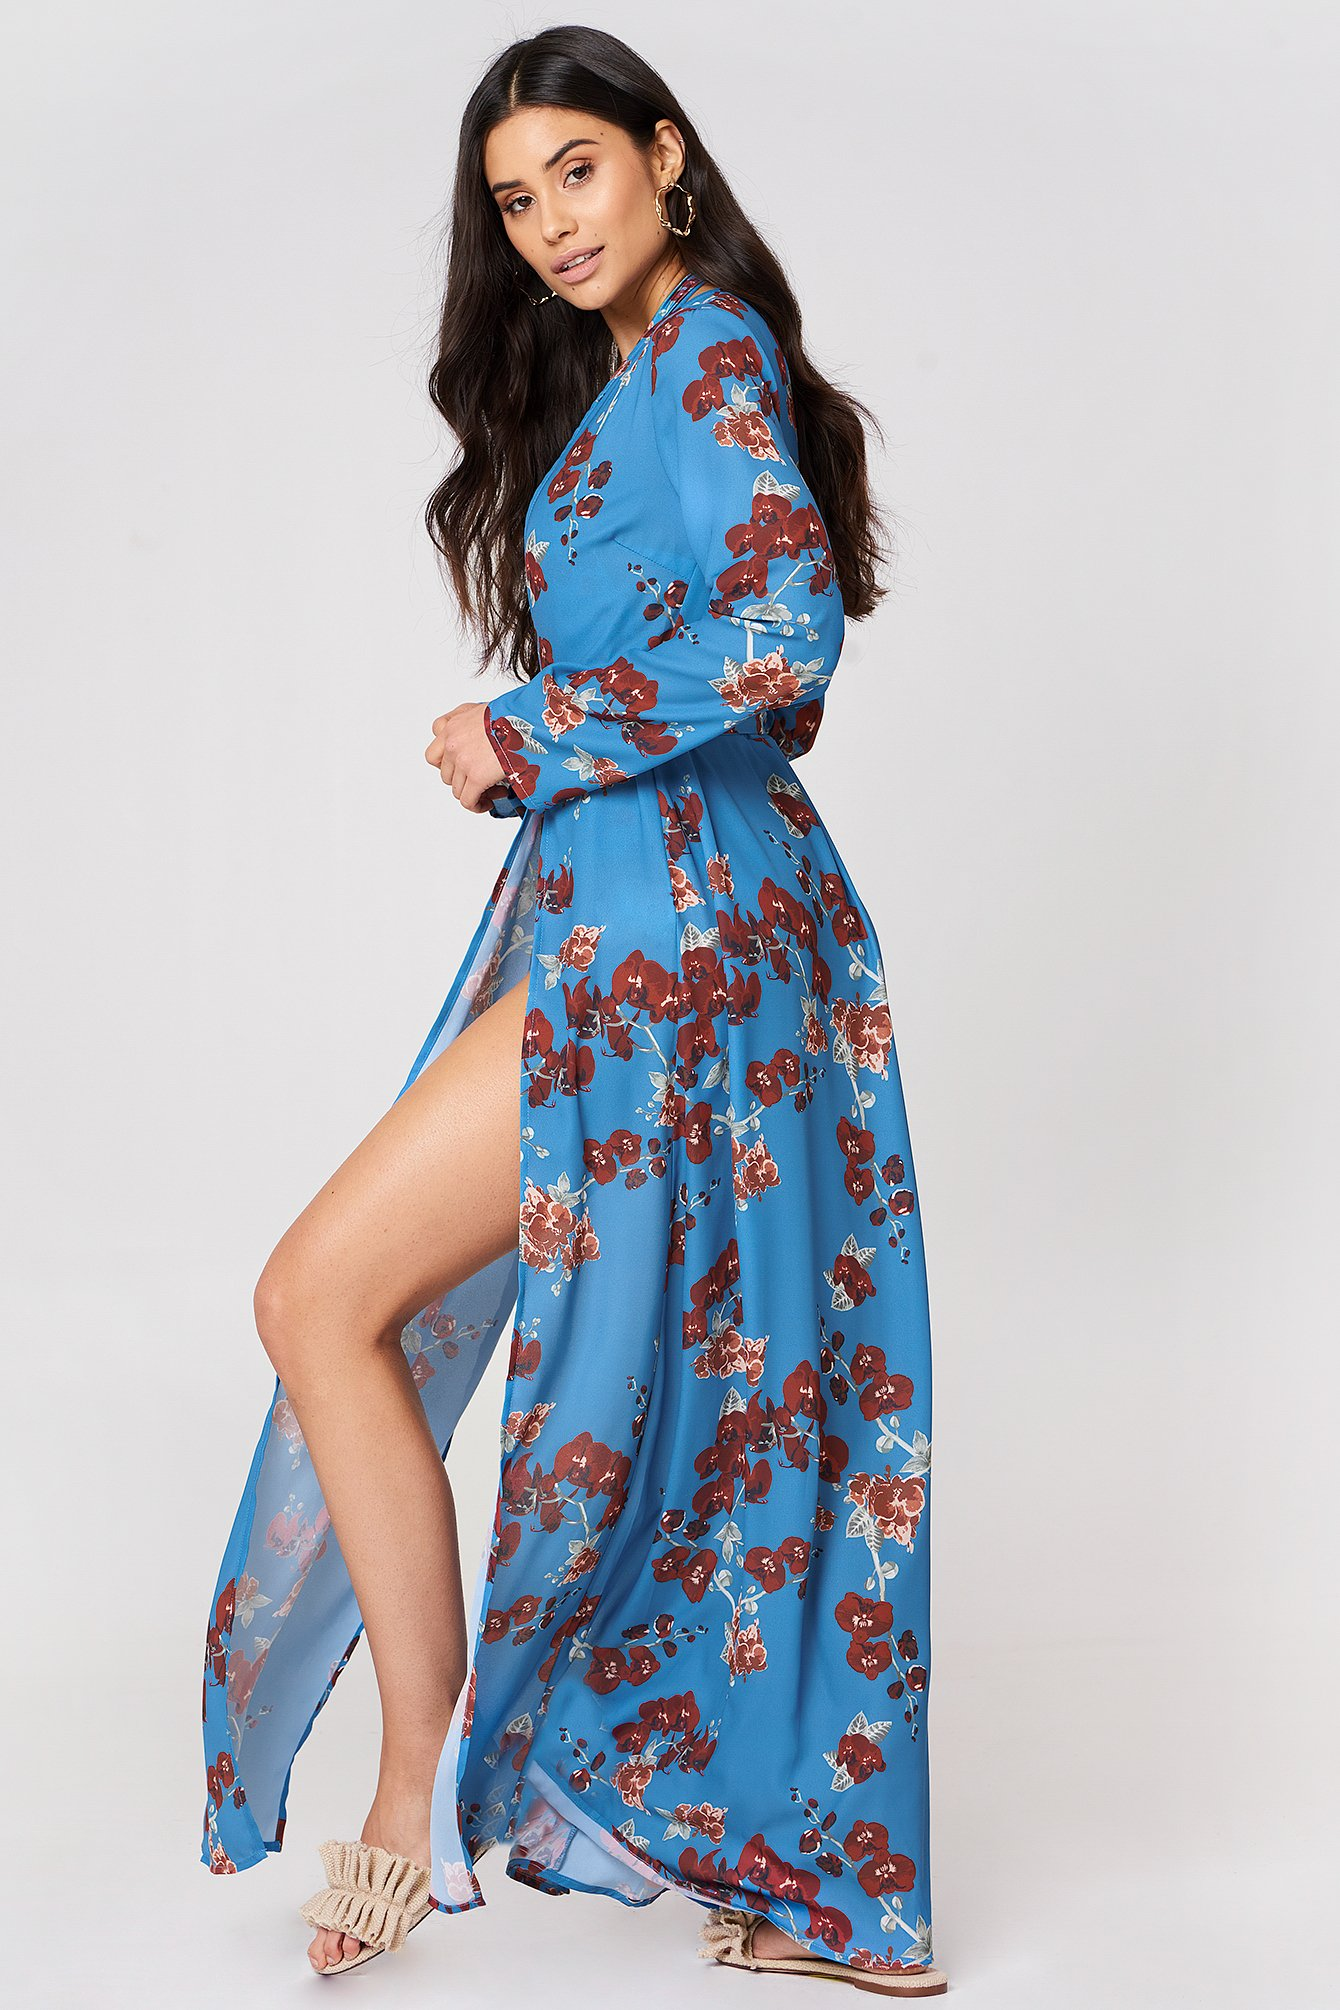 Dresses | Shop Party dresses, Beachwear & Caftans | na-kd.com